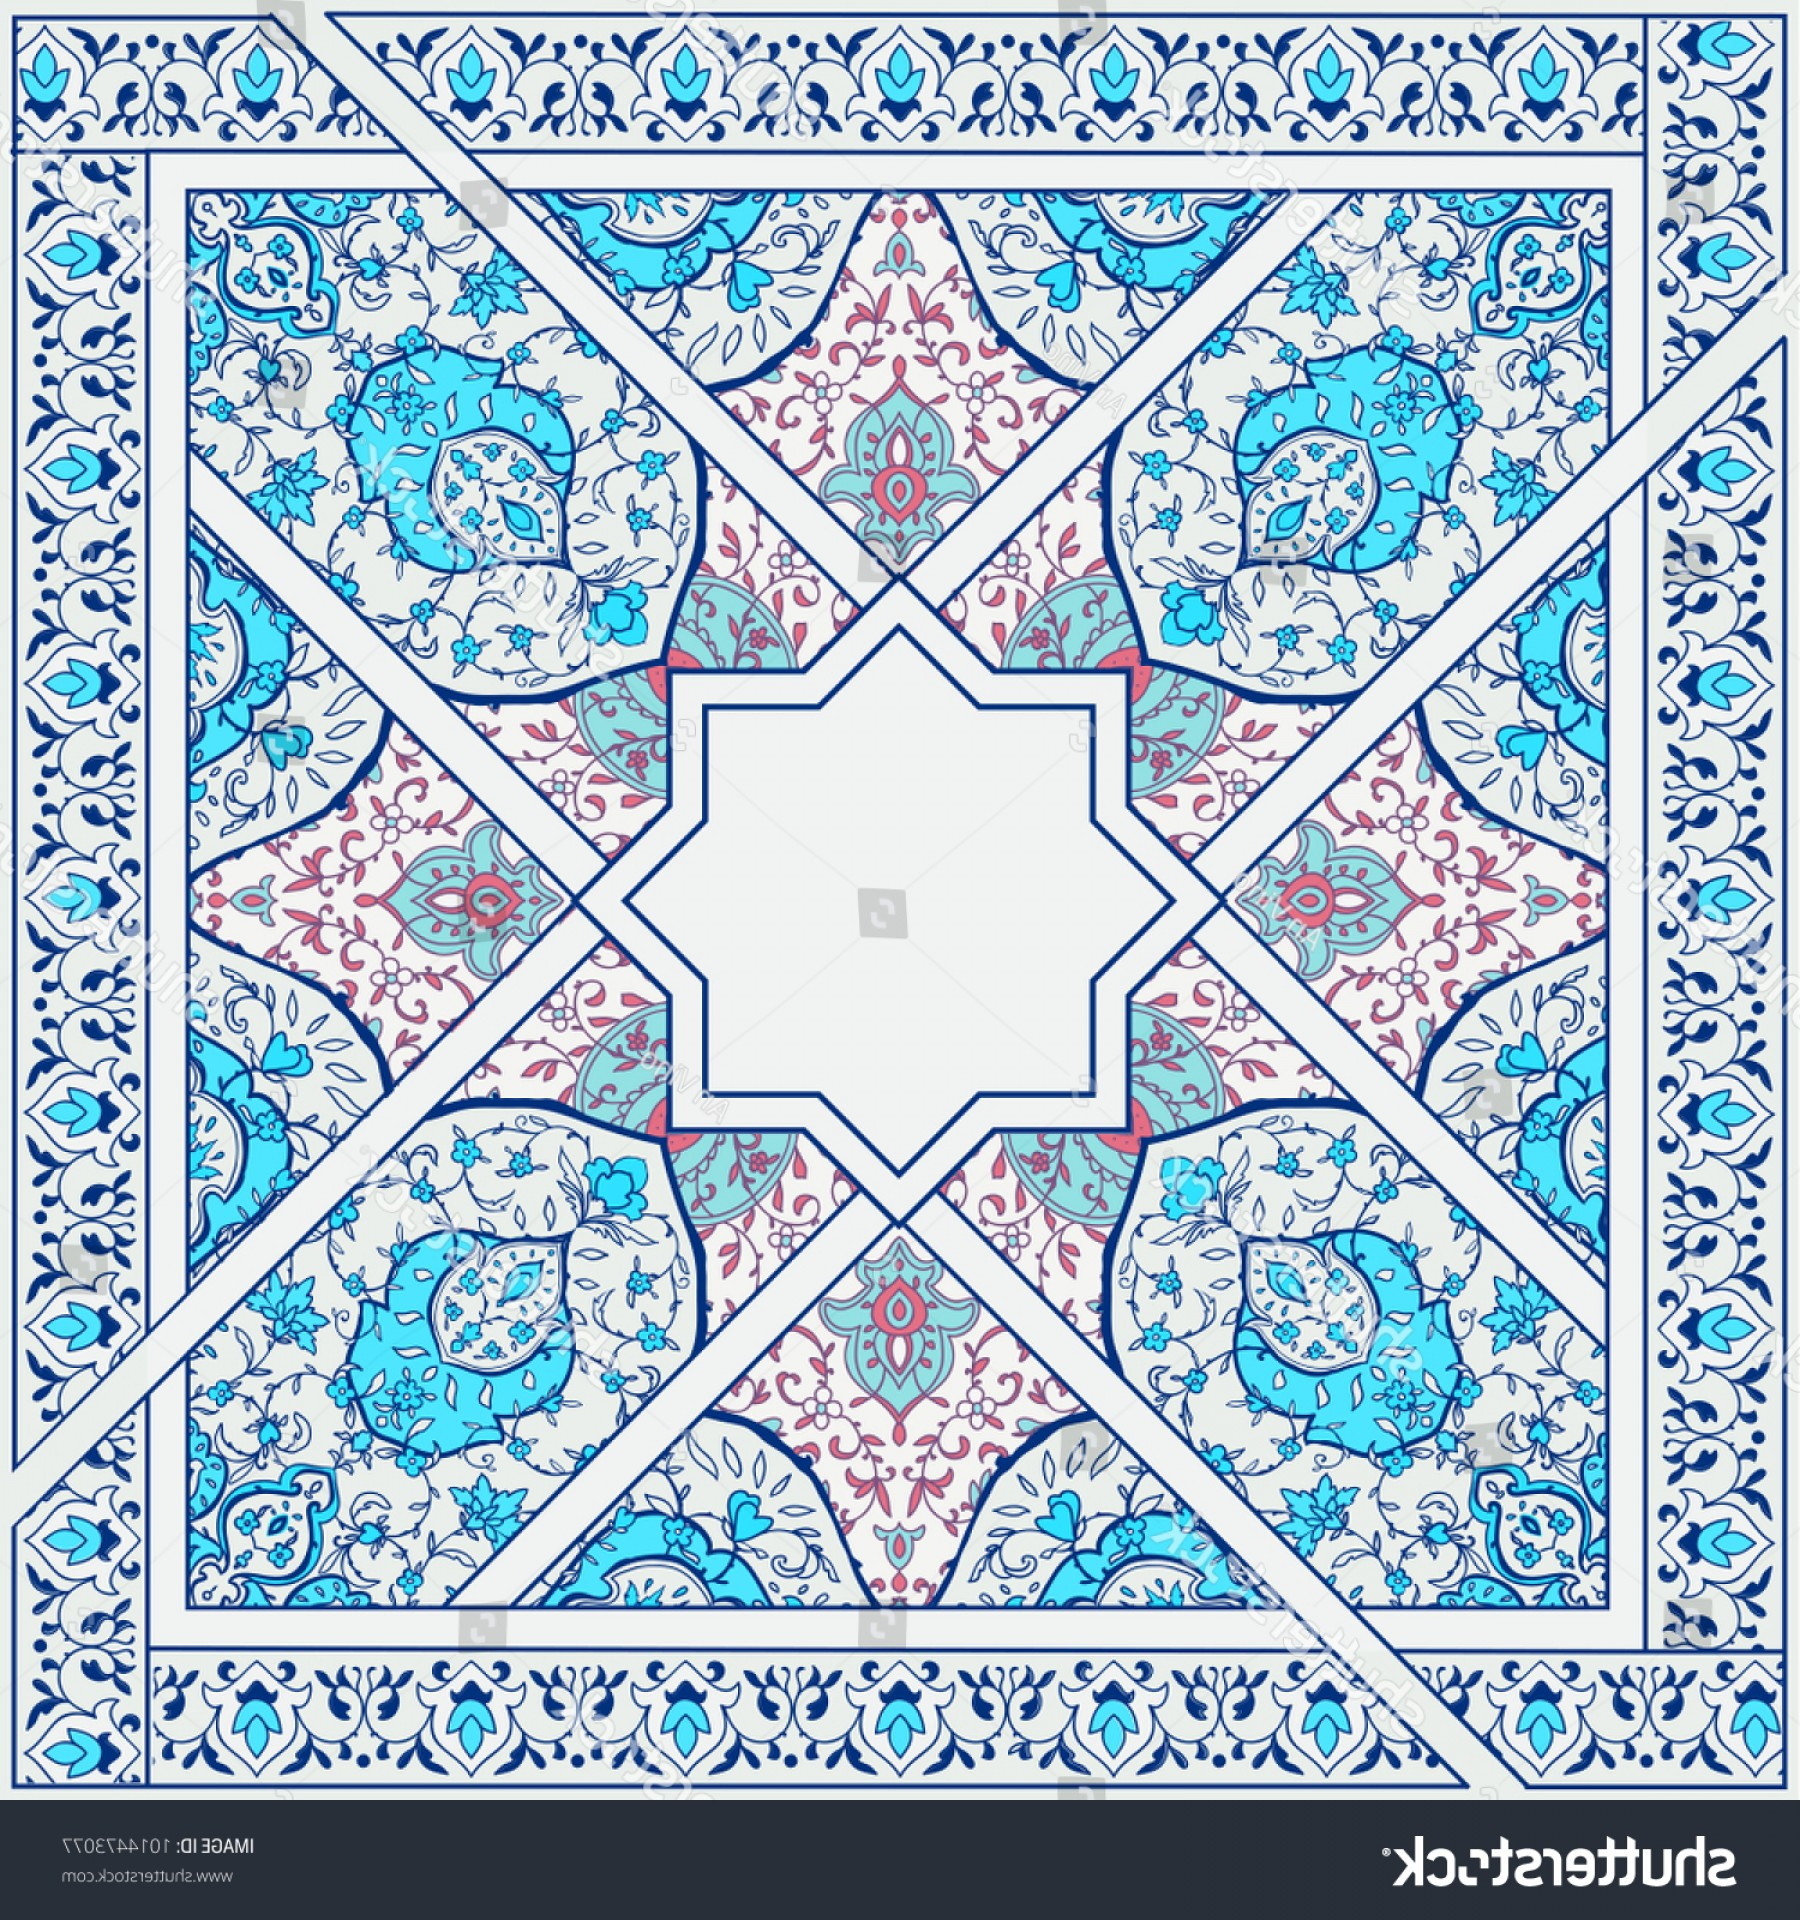 Aqua Victorian Medallions Vectors: Islamic Indian Floral Pattern Victorian Style